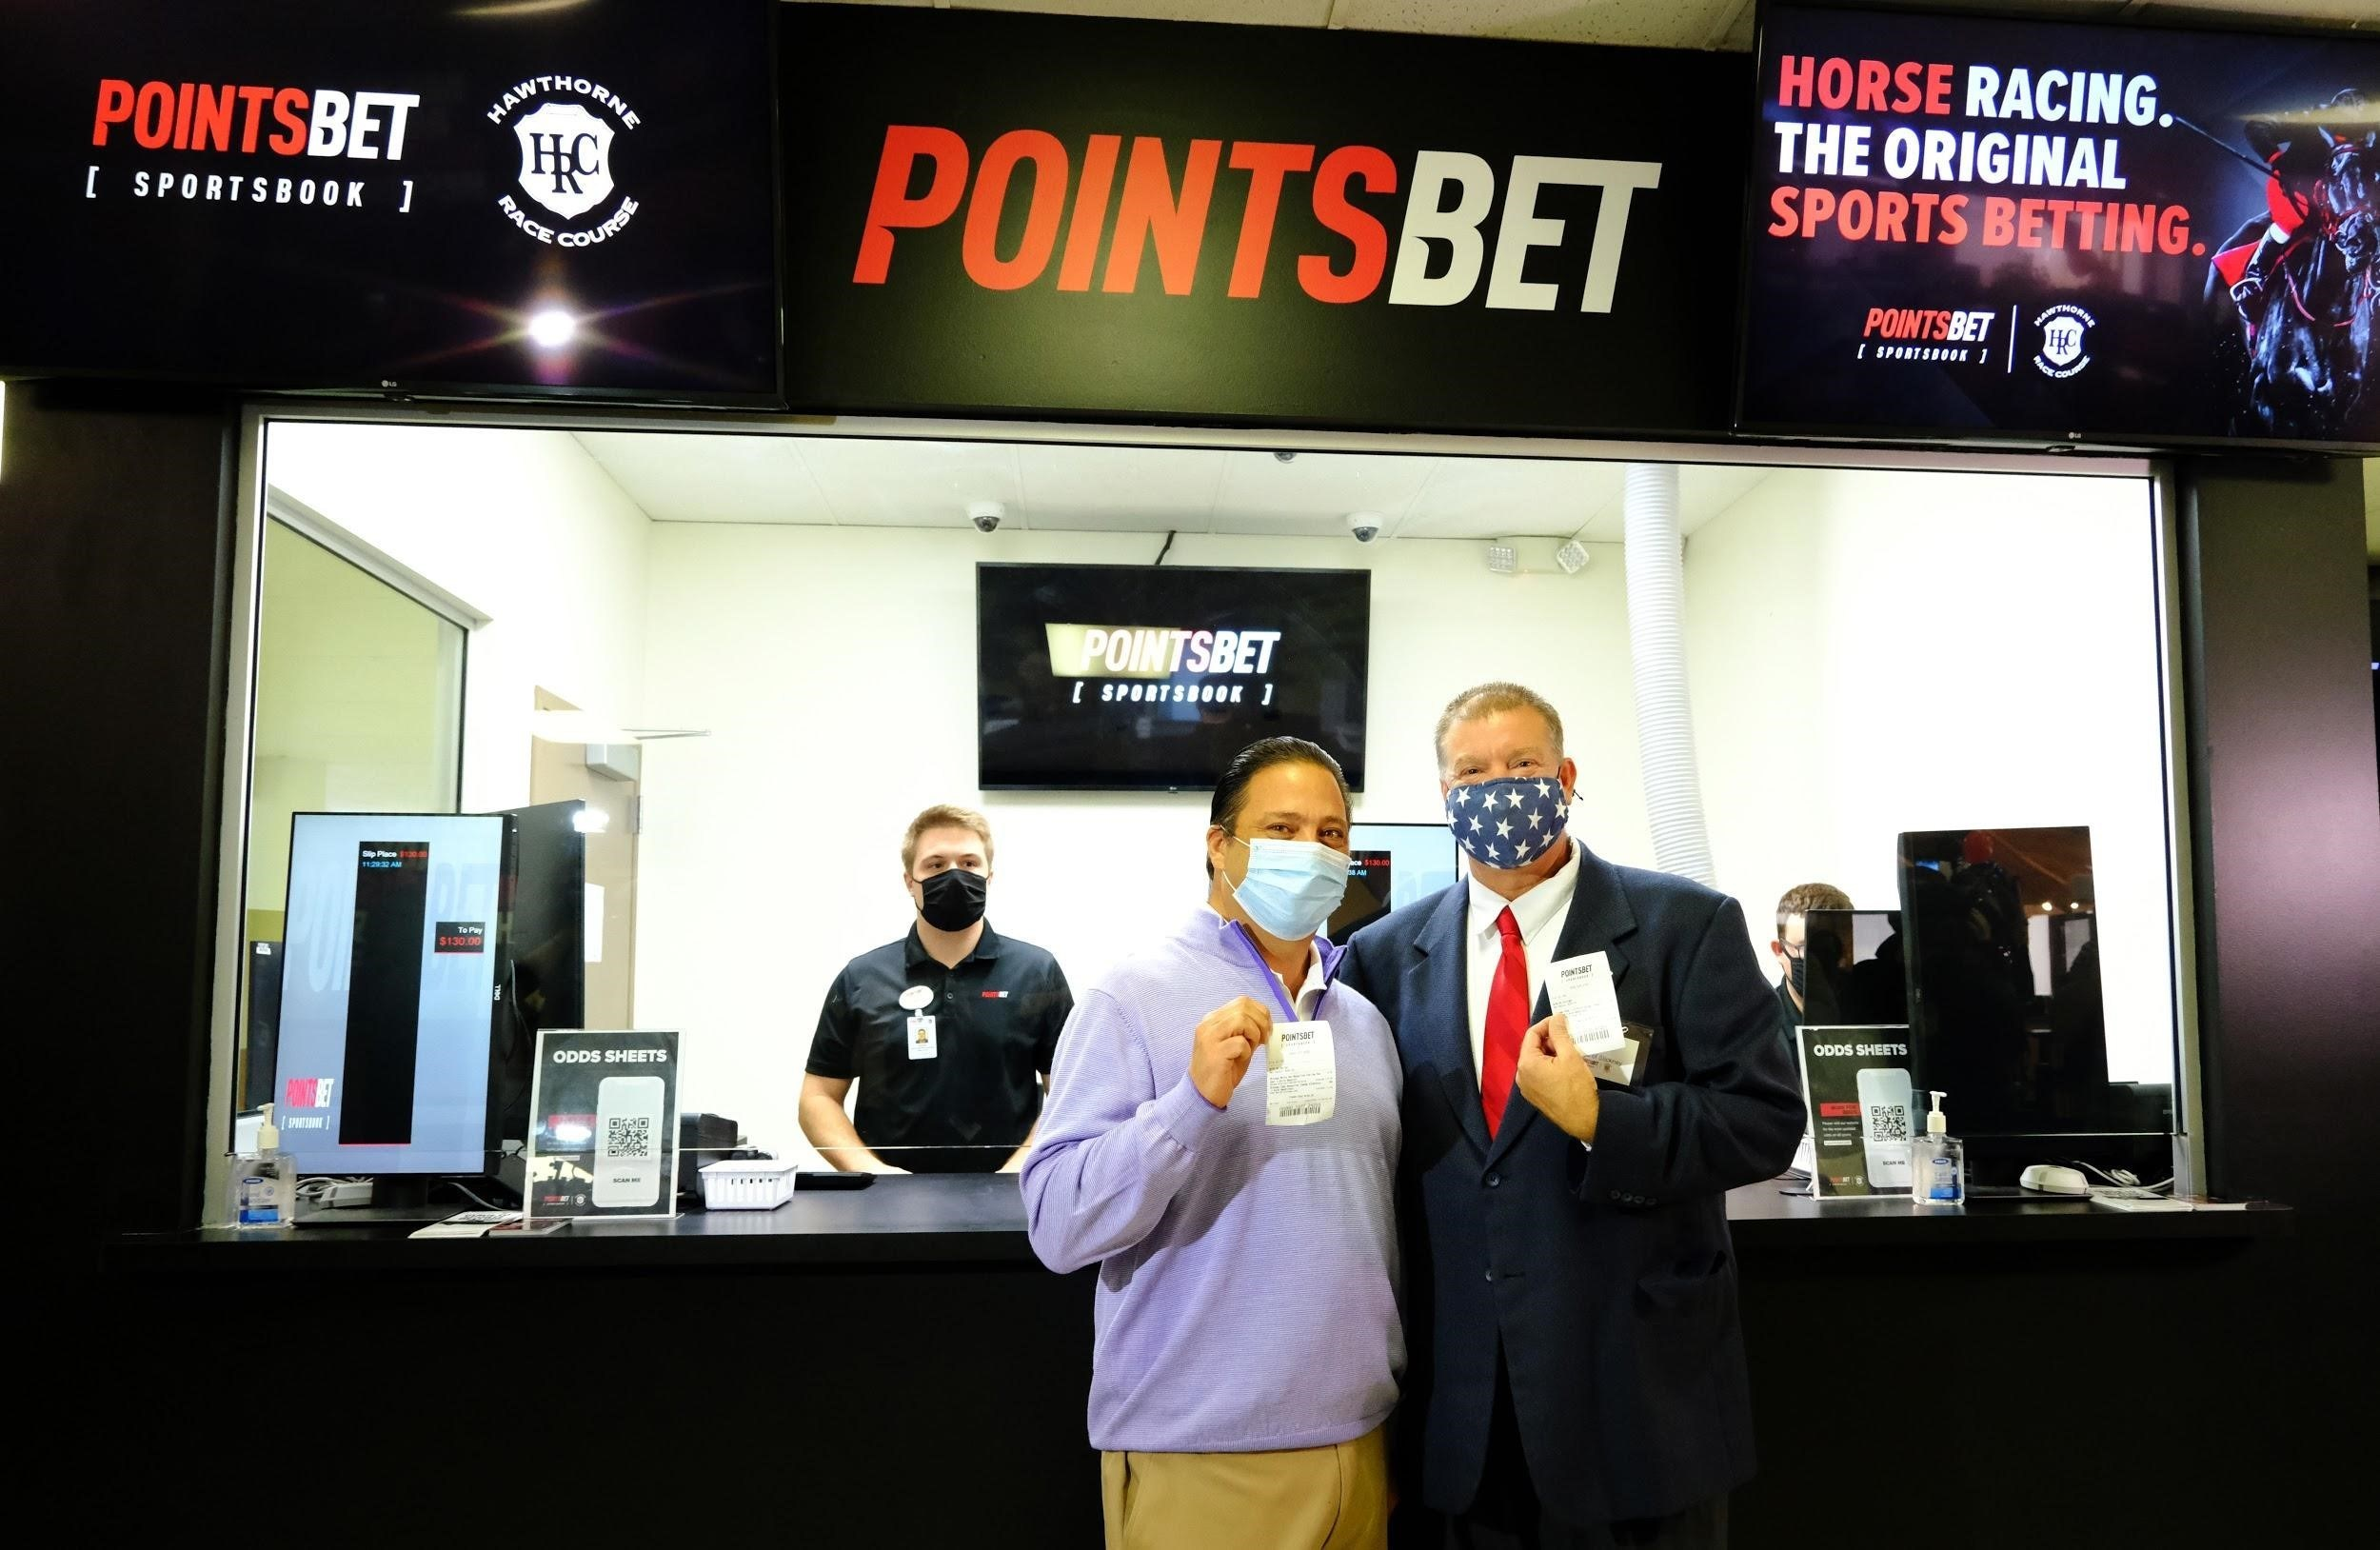 off-track betting parlors chicago area